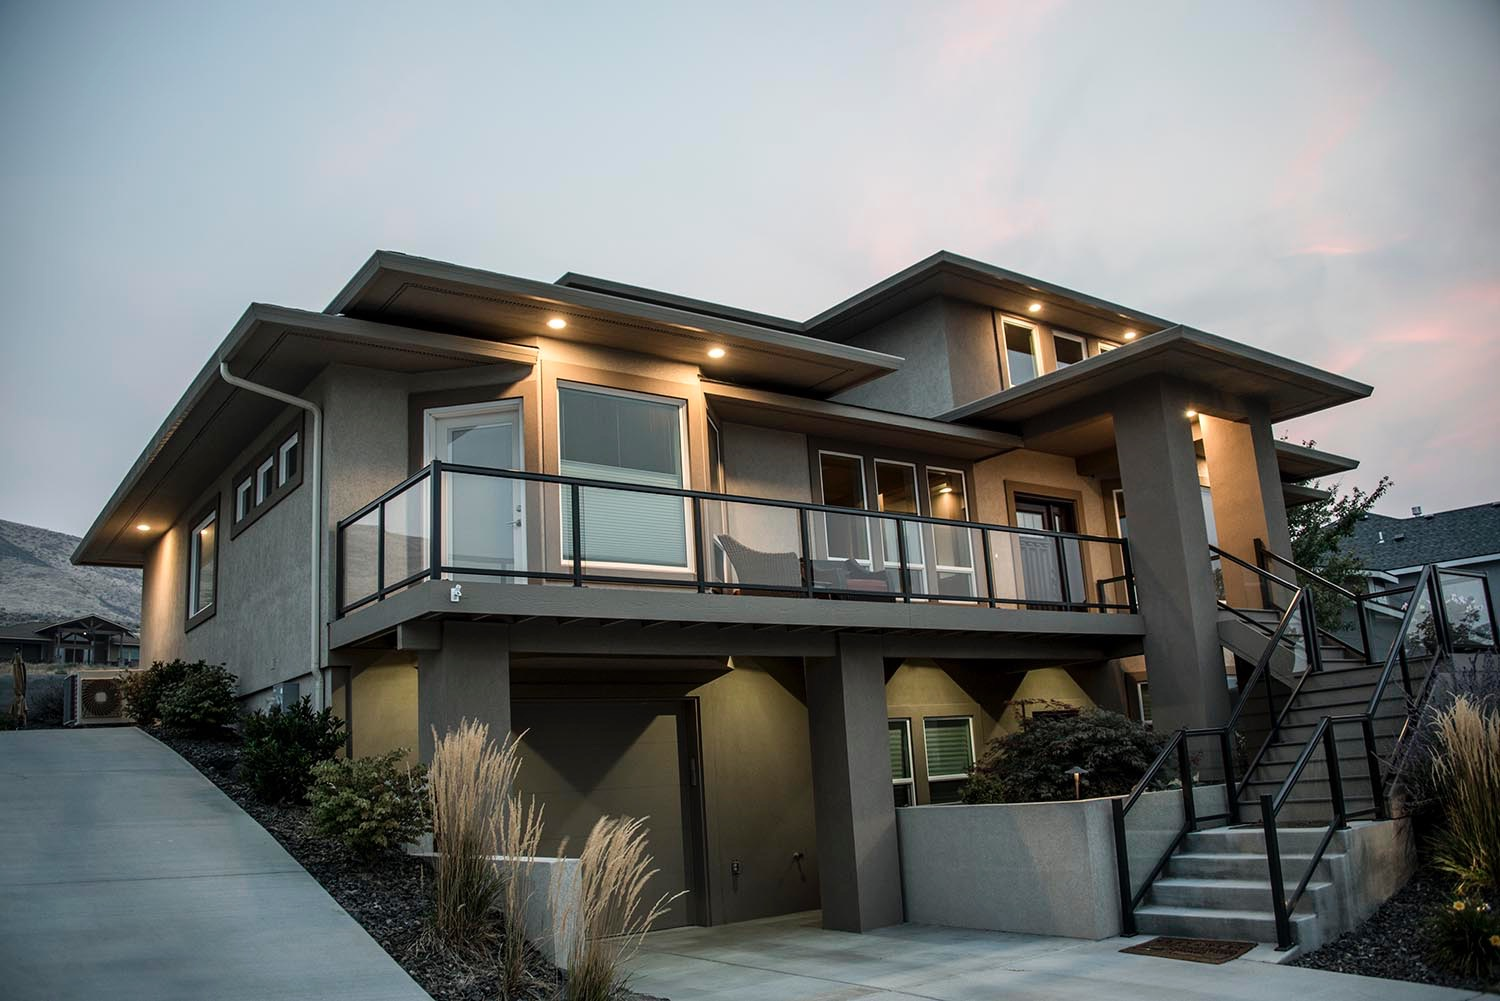 Garage Builders Tri Cities Wa Tri Cities Custom Home Builder Energy Efficient Home Construction